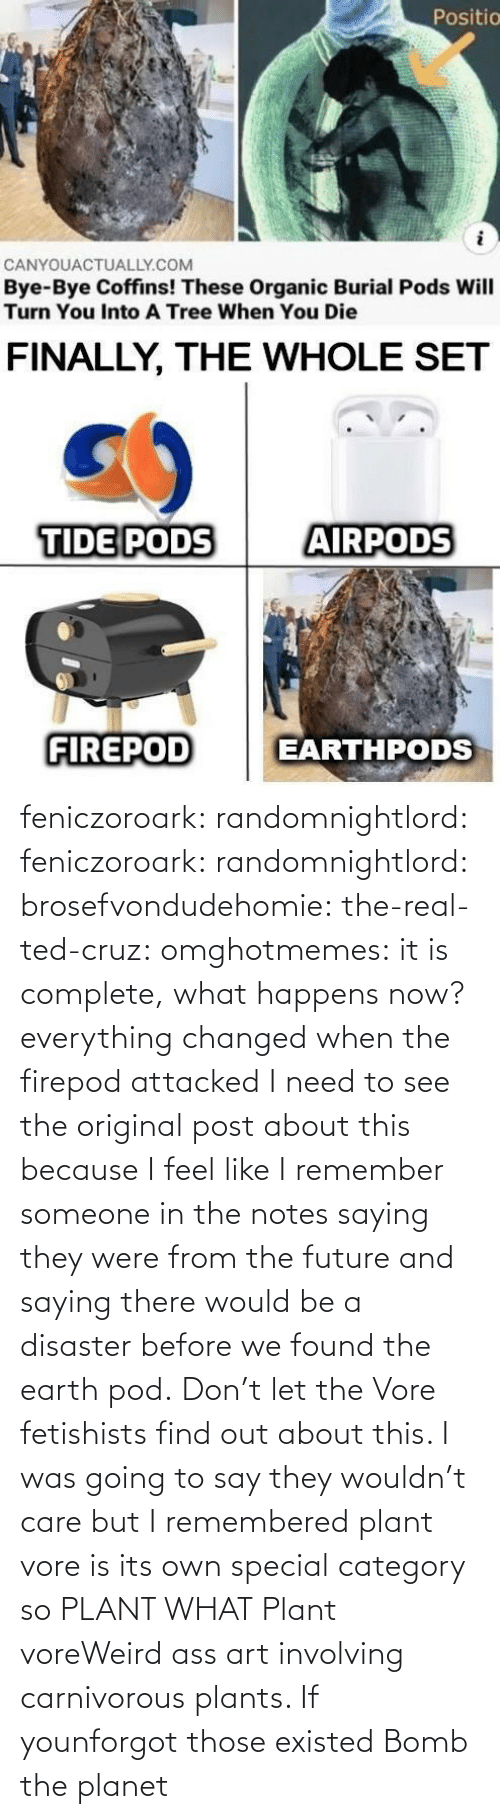 pod: feniczoroark:  randomnightlord:  feniczoroark:  randomnightlord:  brosefvondudehomie: the-real-ted-cruz:  omghotmemes: it is complete, what happens now? everything changed when the firepod attacked    I need to see the original post about this because I feel like I remember someone in the notes saying they were from the future and saying there would be a disaster before we found the earth pod.    Don't let the Vore fetishists find out about this.    I was going to say they wouldn't care but I remembered plant vore is its own special category so   PLANT WHAT   Plant voreWeird ass art involving carnivorous plants. If younforgot those existed   Bomb the planet